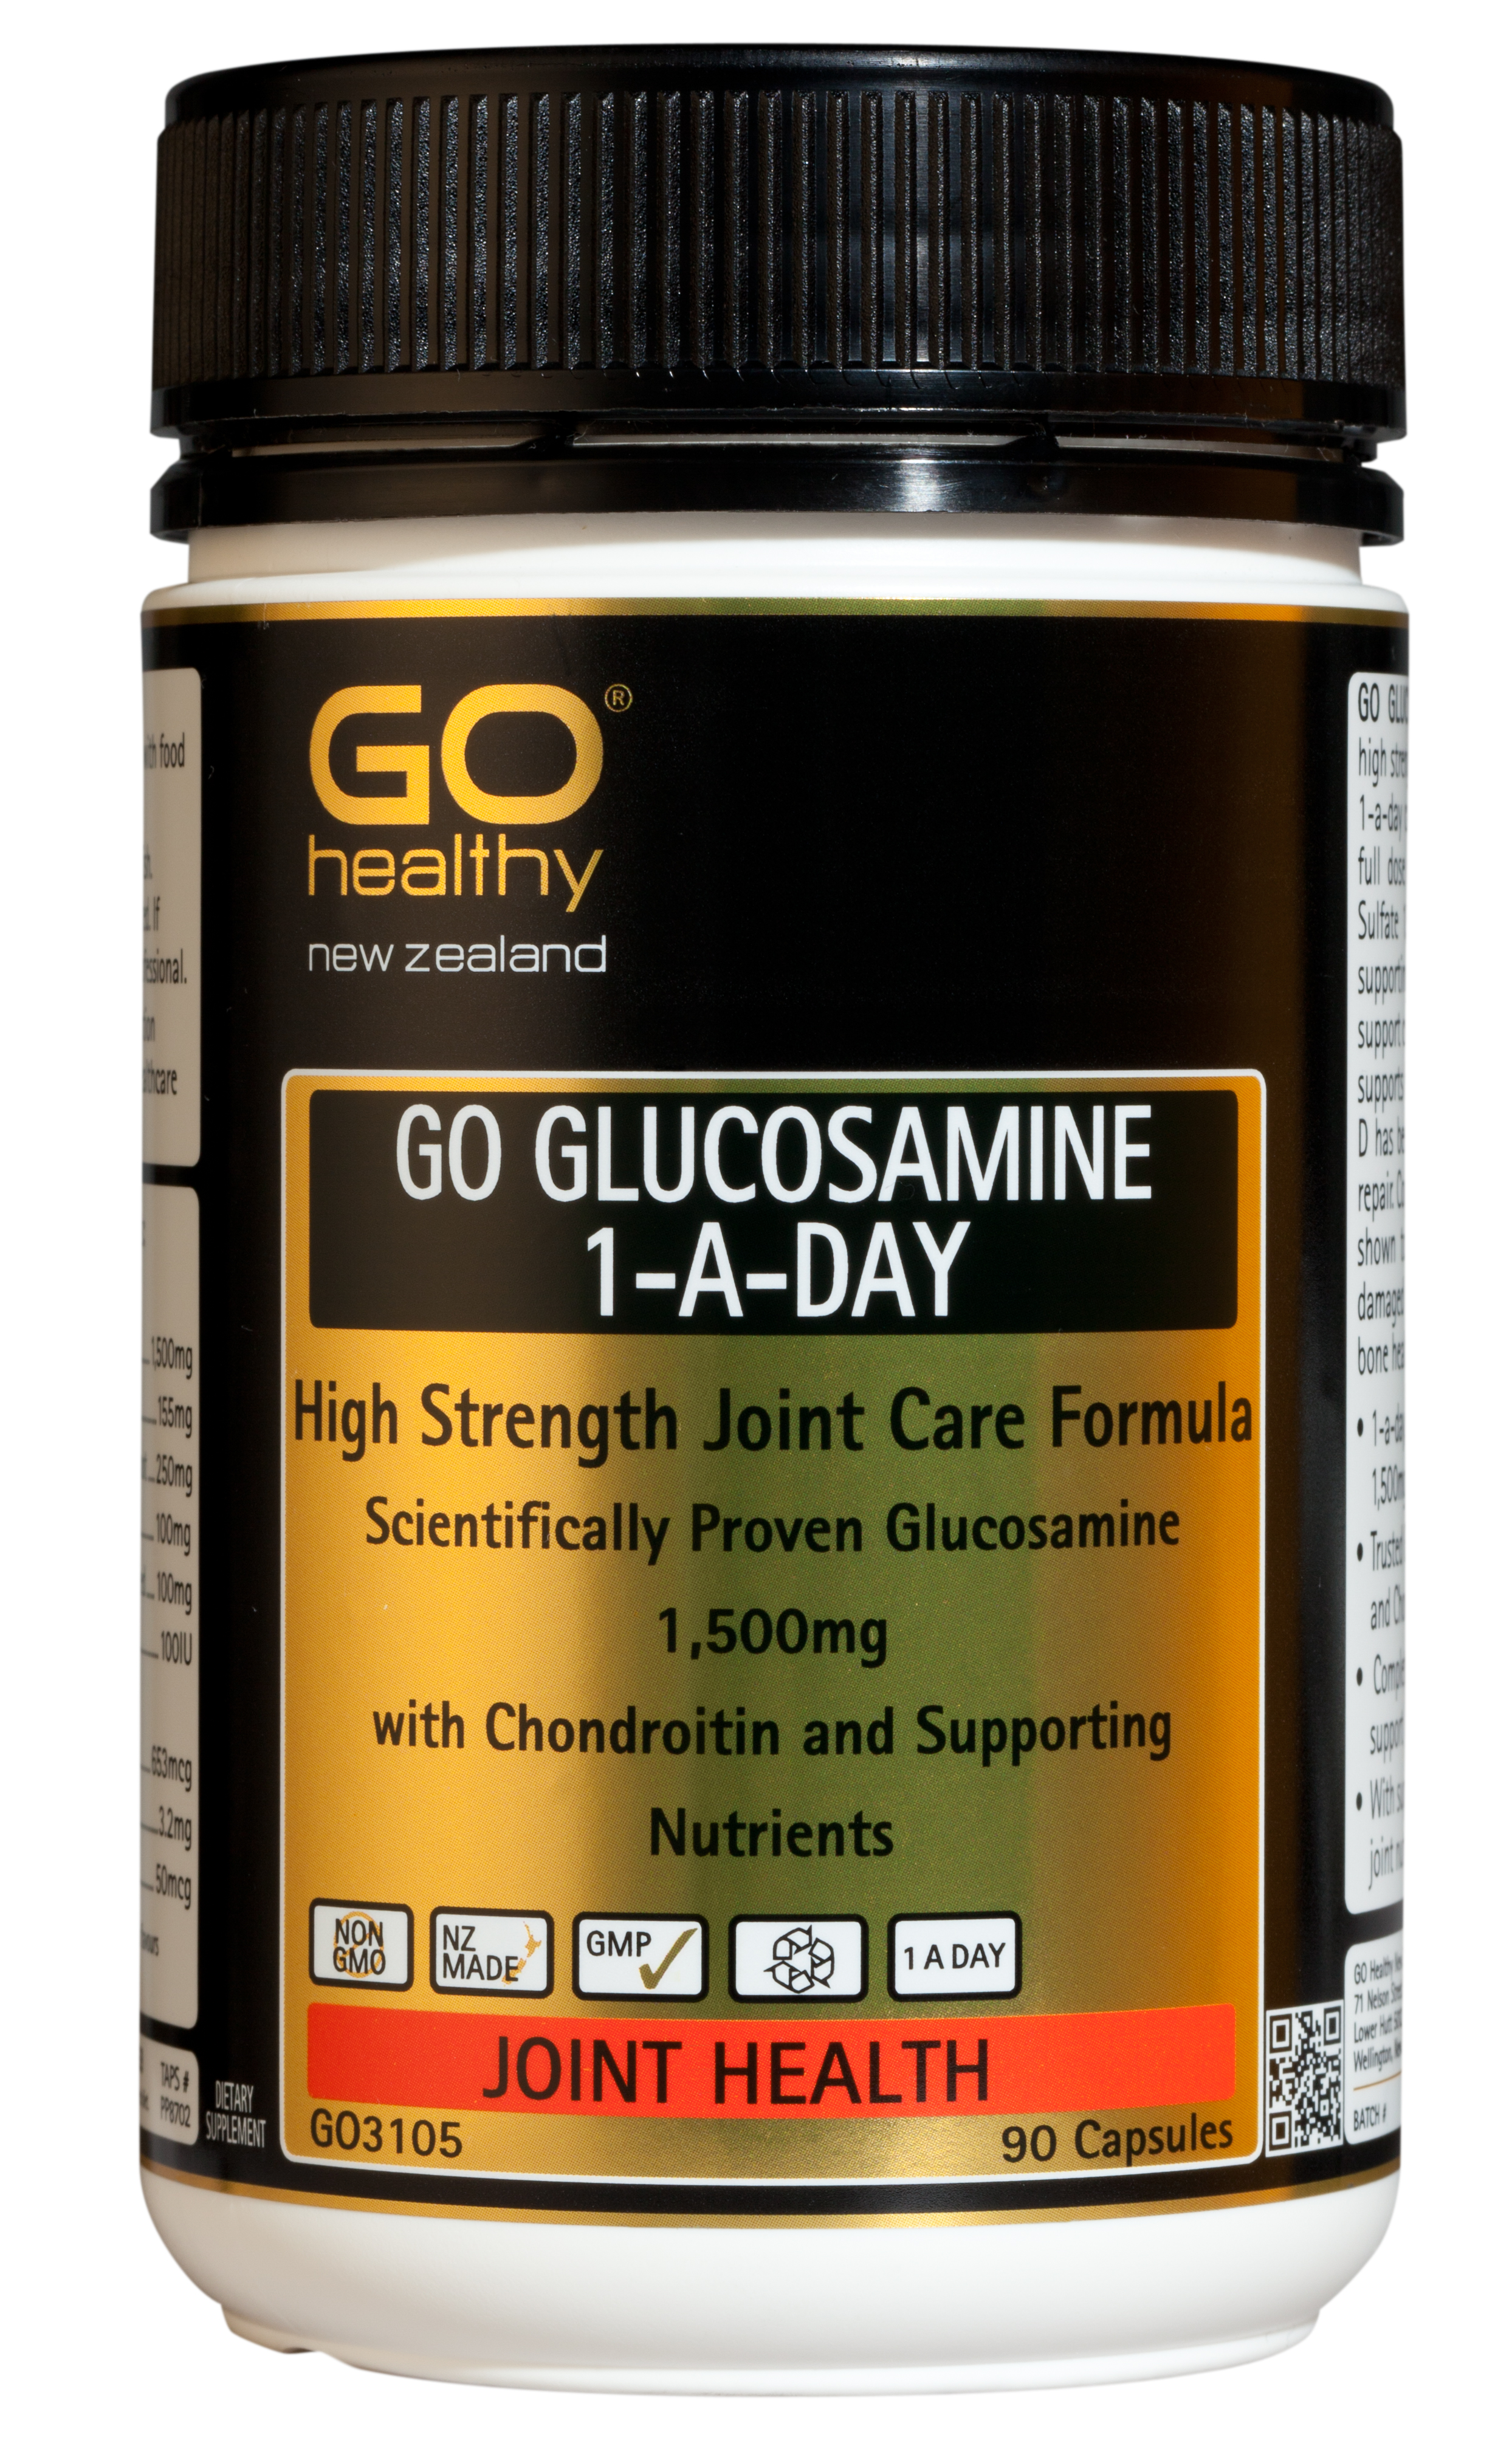 GO Healthy Glucosamine 1-A-Day 90 Capsules